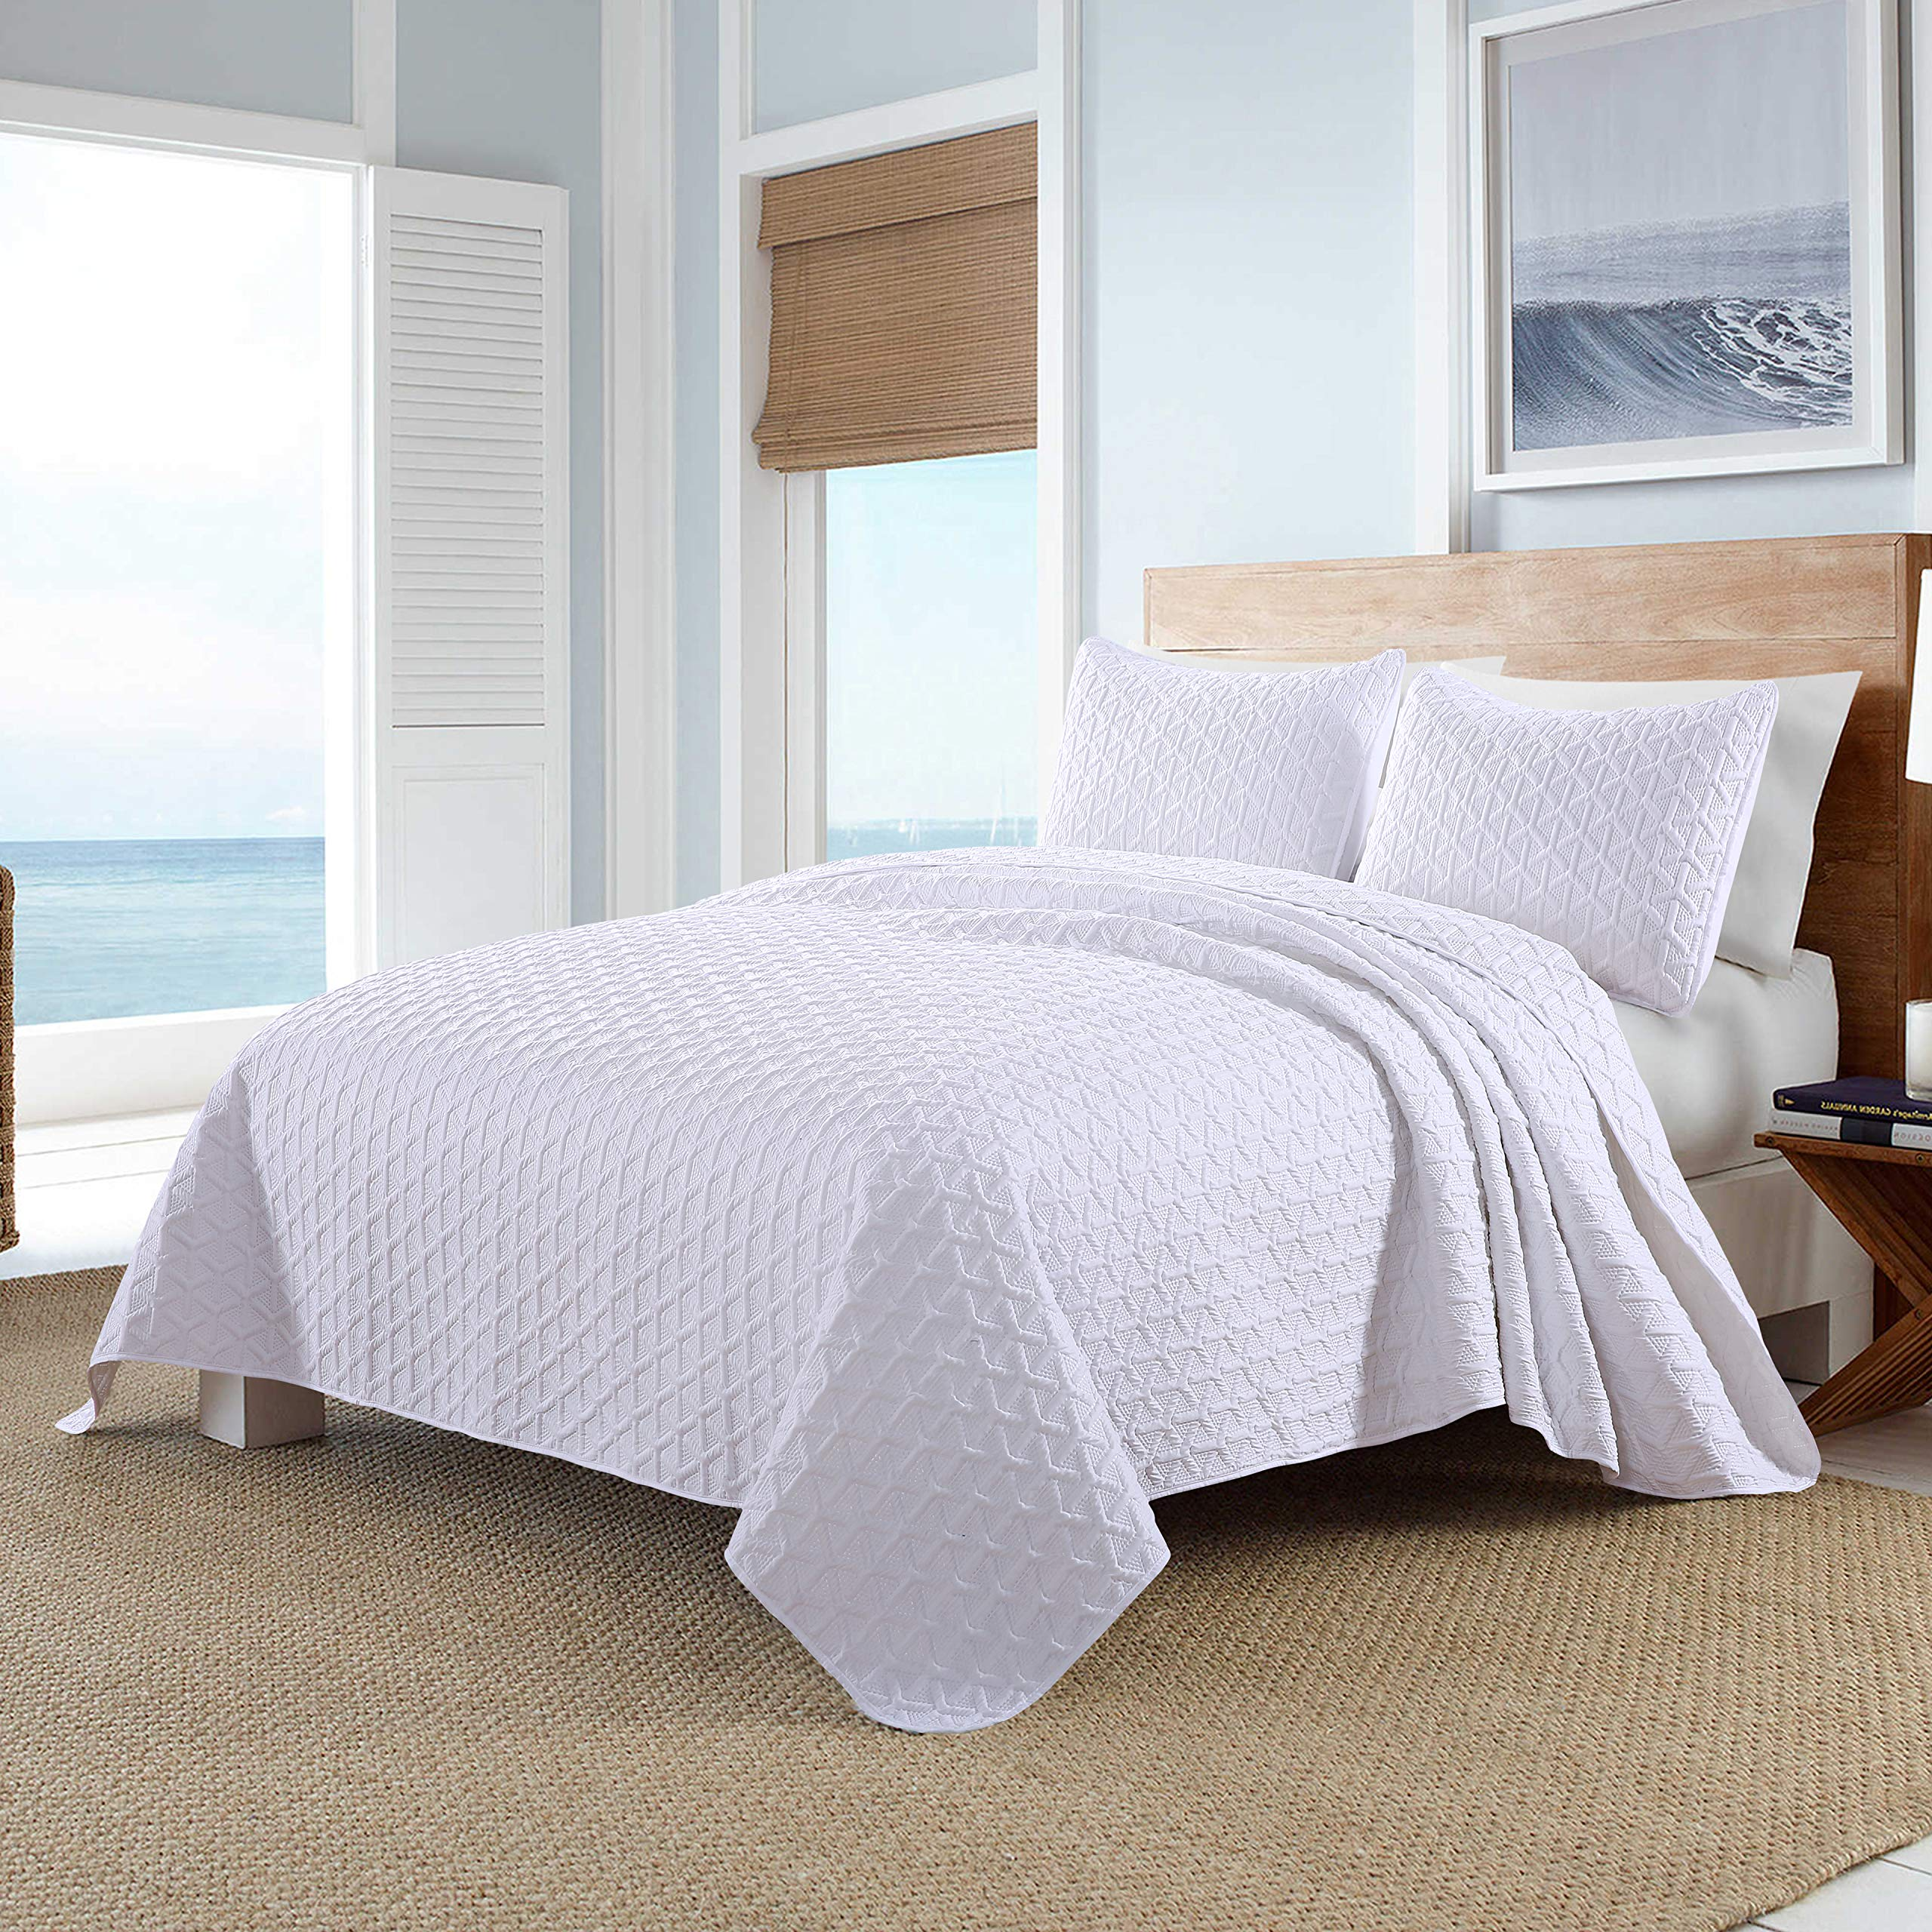 Pioneer Home Textile Olivia 3-Piece Ultrasonic Quilt Set, Brushed Microfiber, Soft and Breathable, Lightweight, King, Bright White